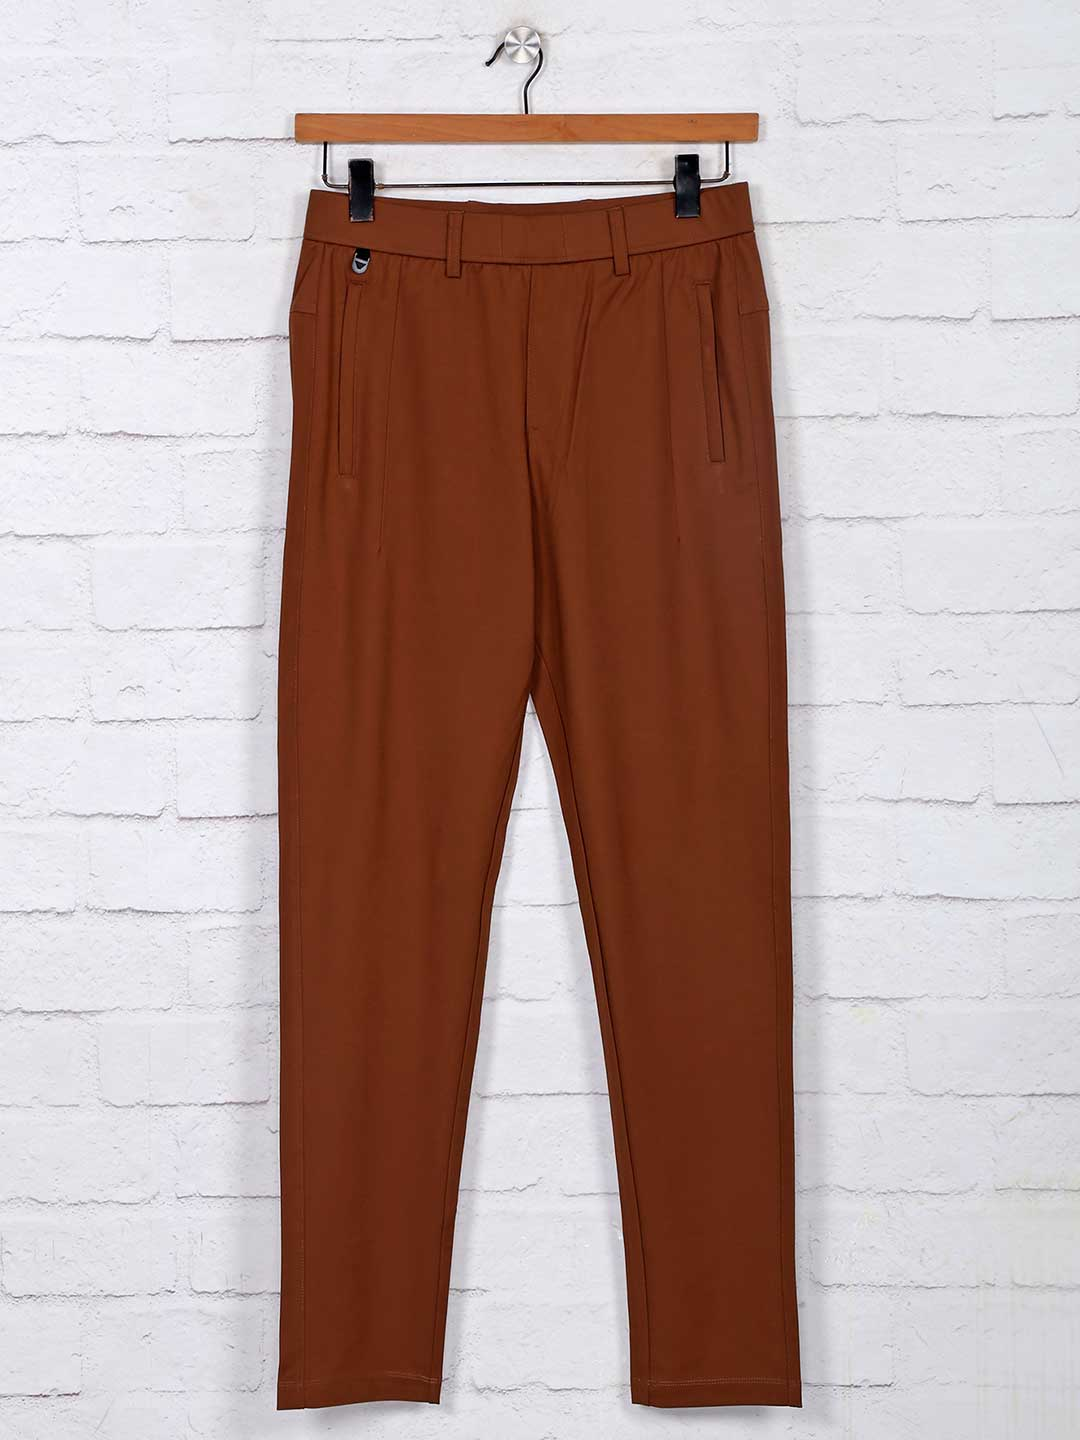 Maml simple brown cotton track pant?imgeng=w_400